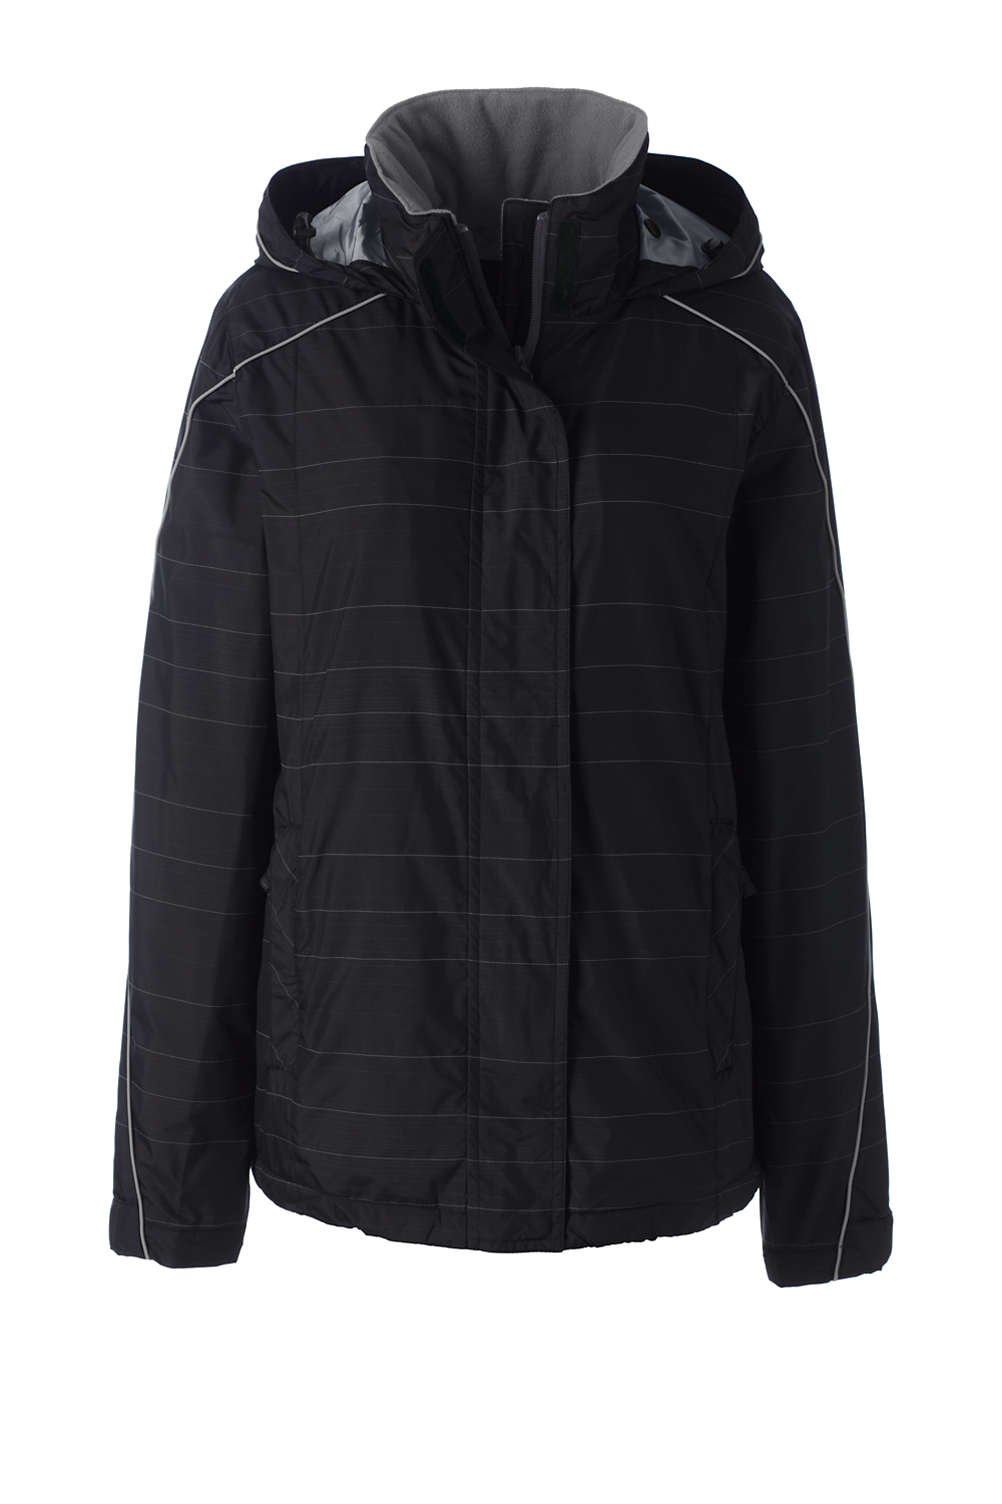 1f0e978e Women's Reflective Jacket from Lands' End